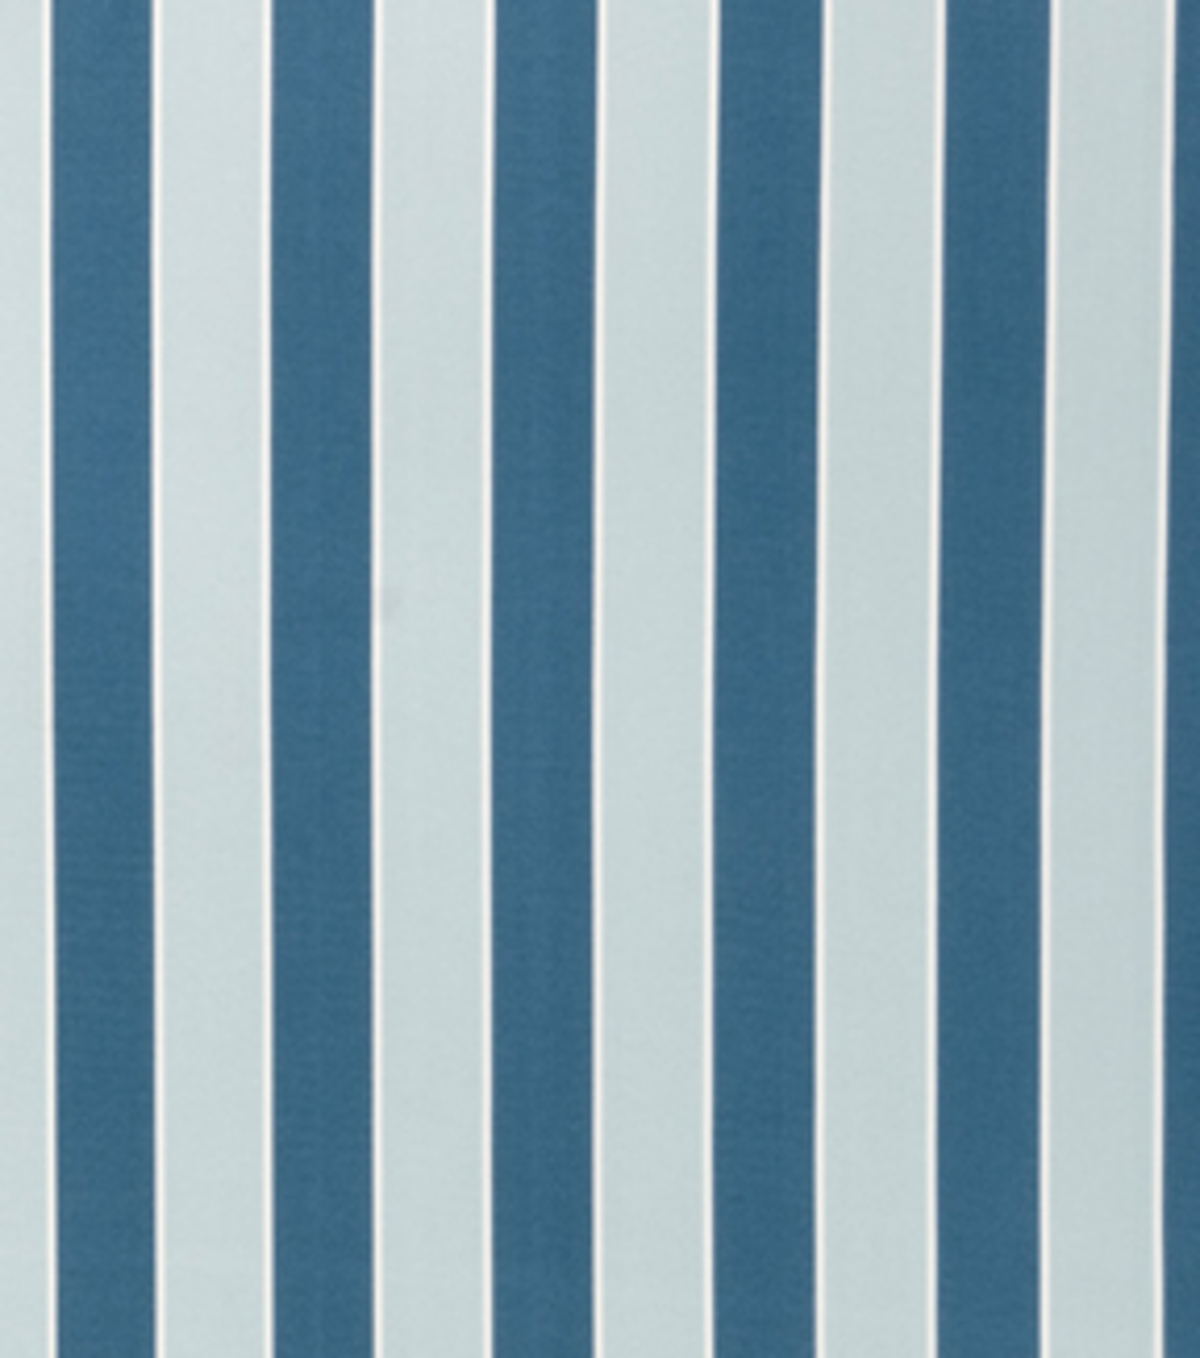 Home Decor 8\u0022x8\u0022 Fabric Swatch-Eaton Square Lory Seaspray